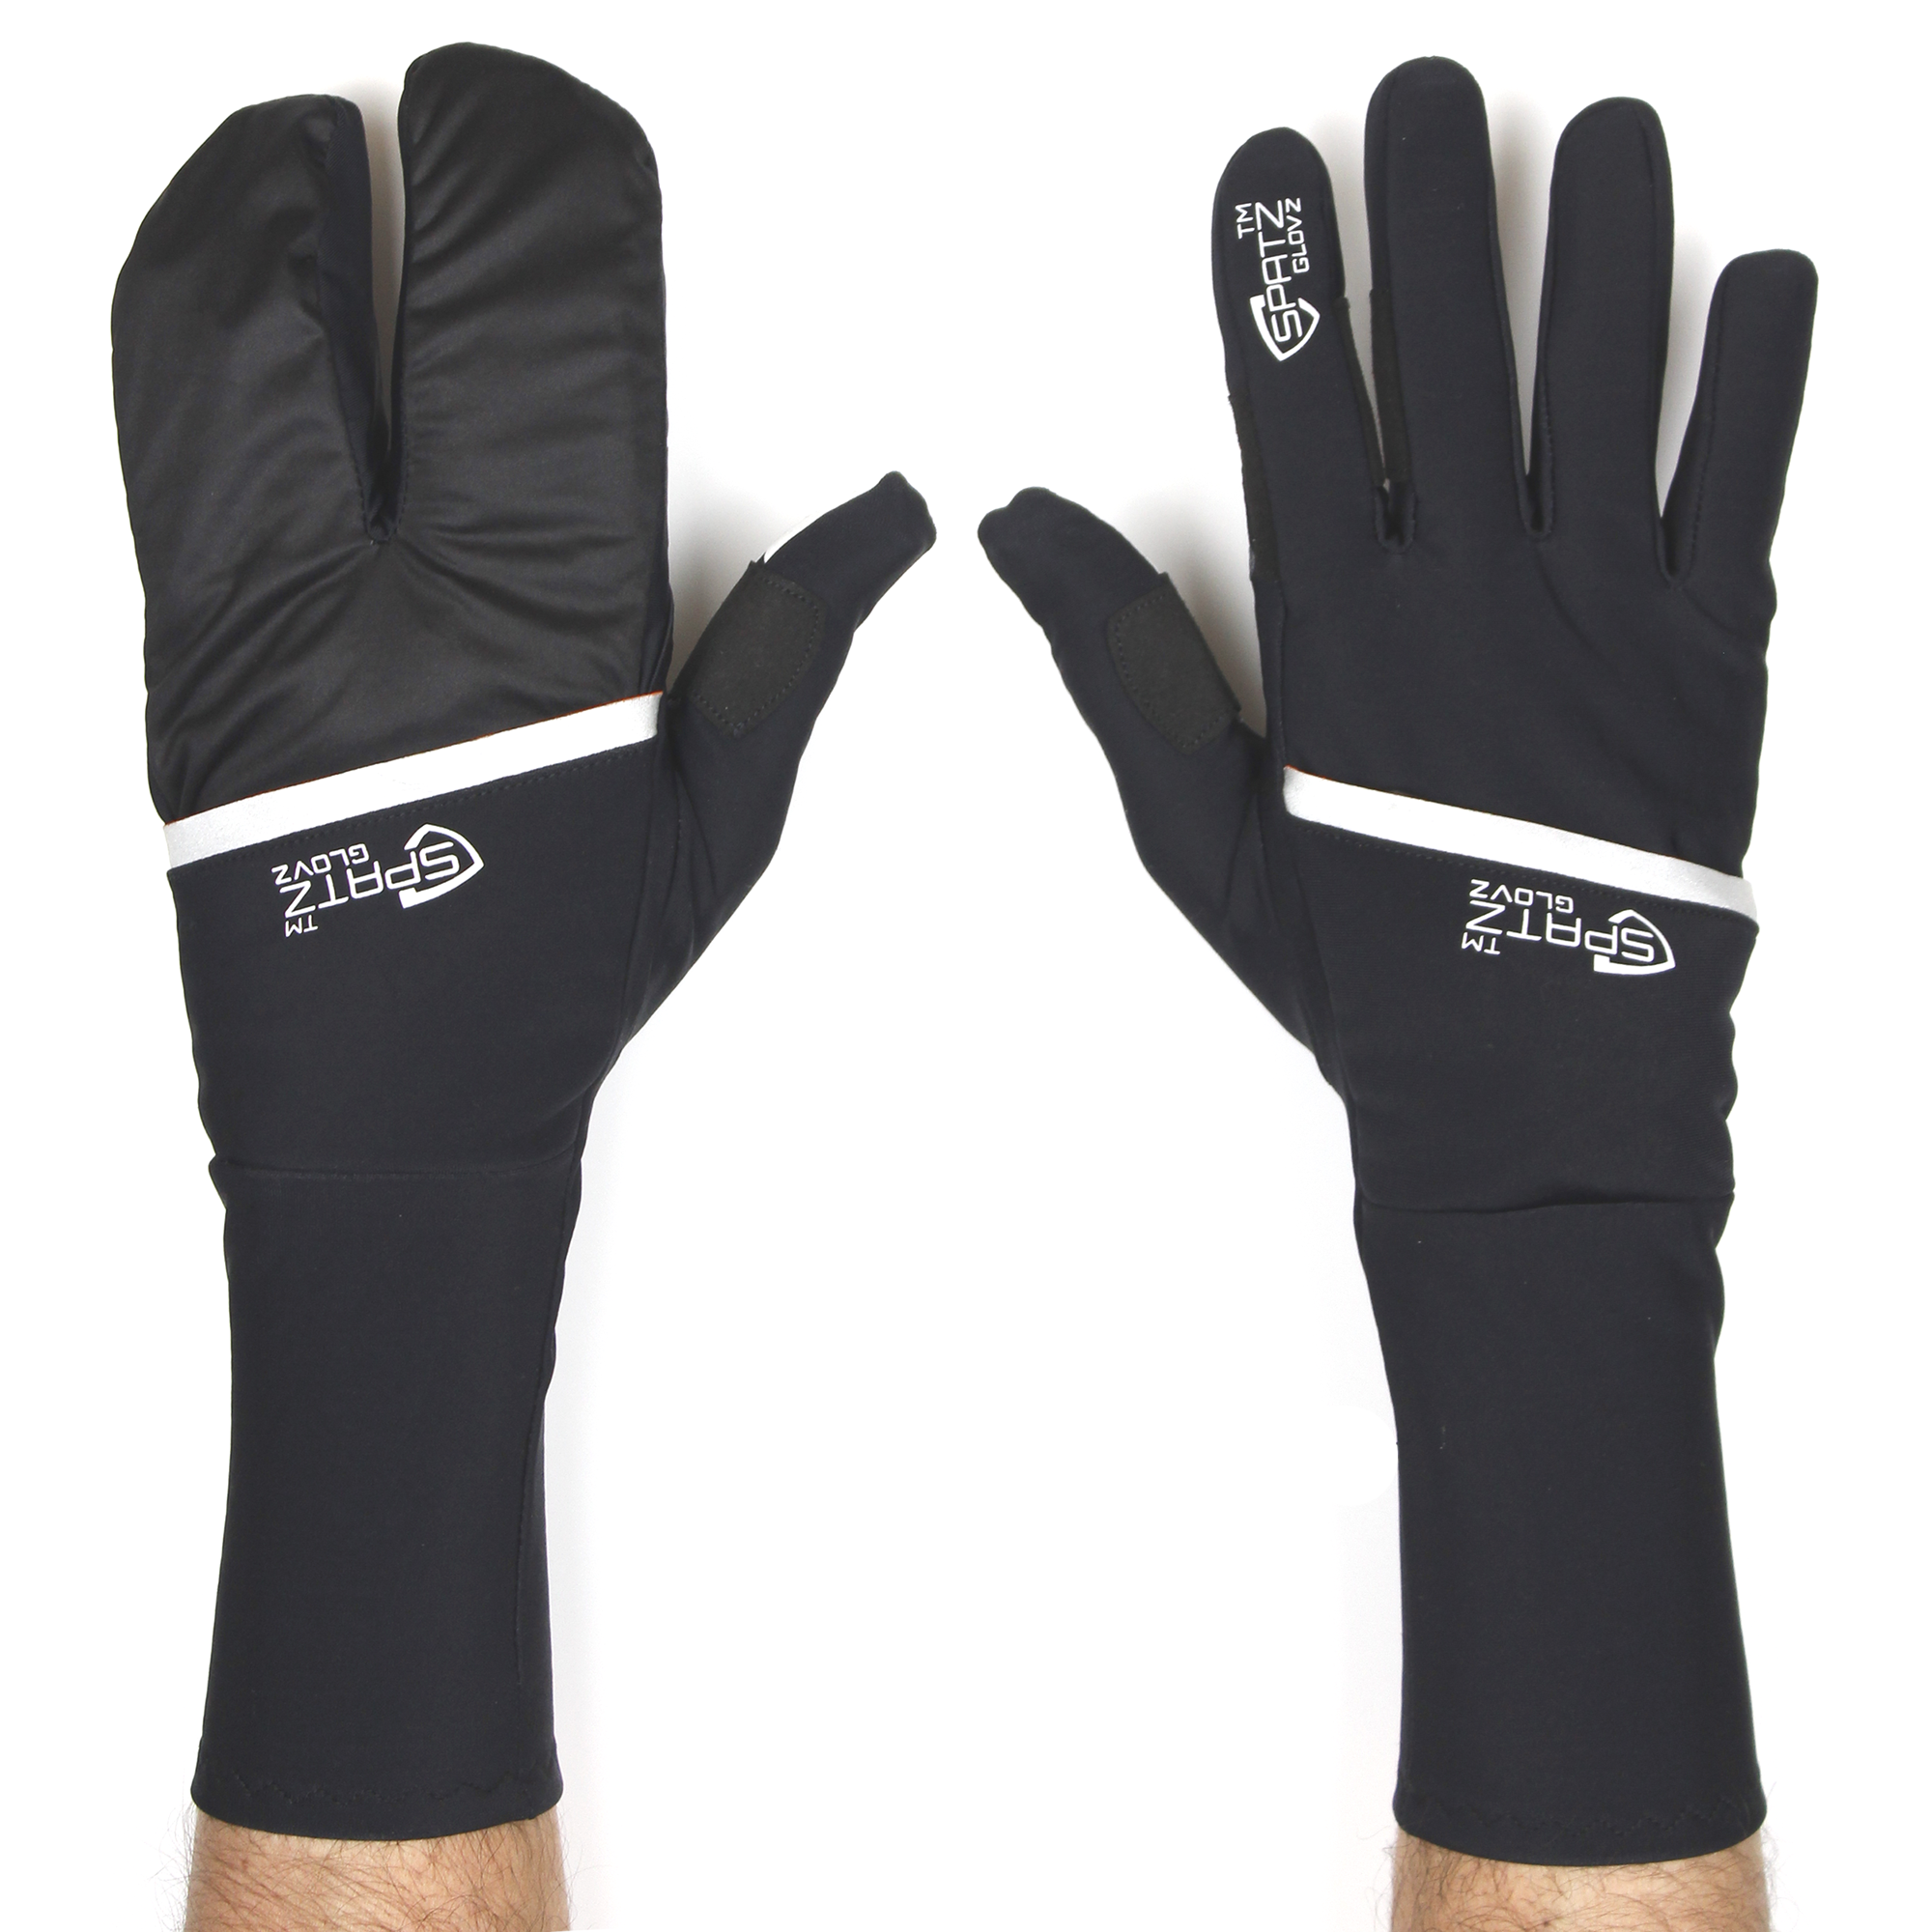 "Spatzwear Cycle Clothing > Gloves & Mitts S SPATZ ""GLOVZ"" Race Gloves with fold-out wind blocking shell"